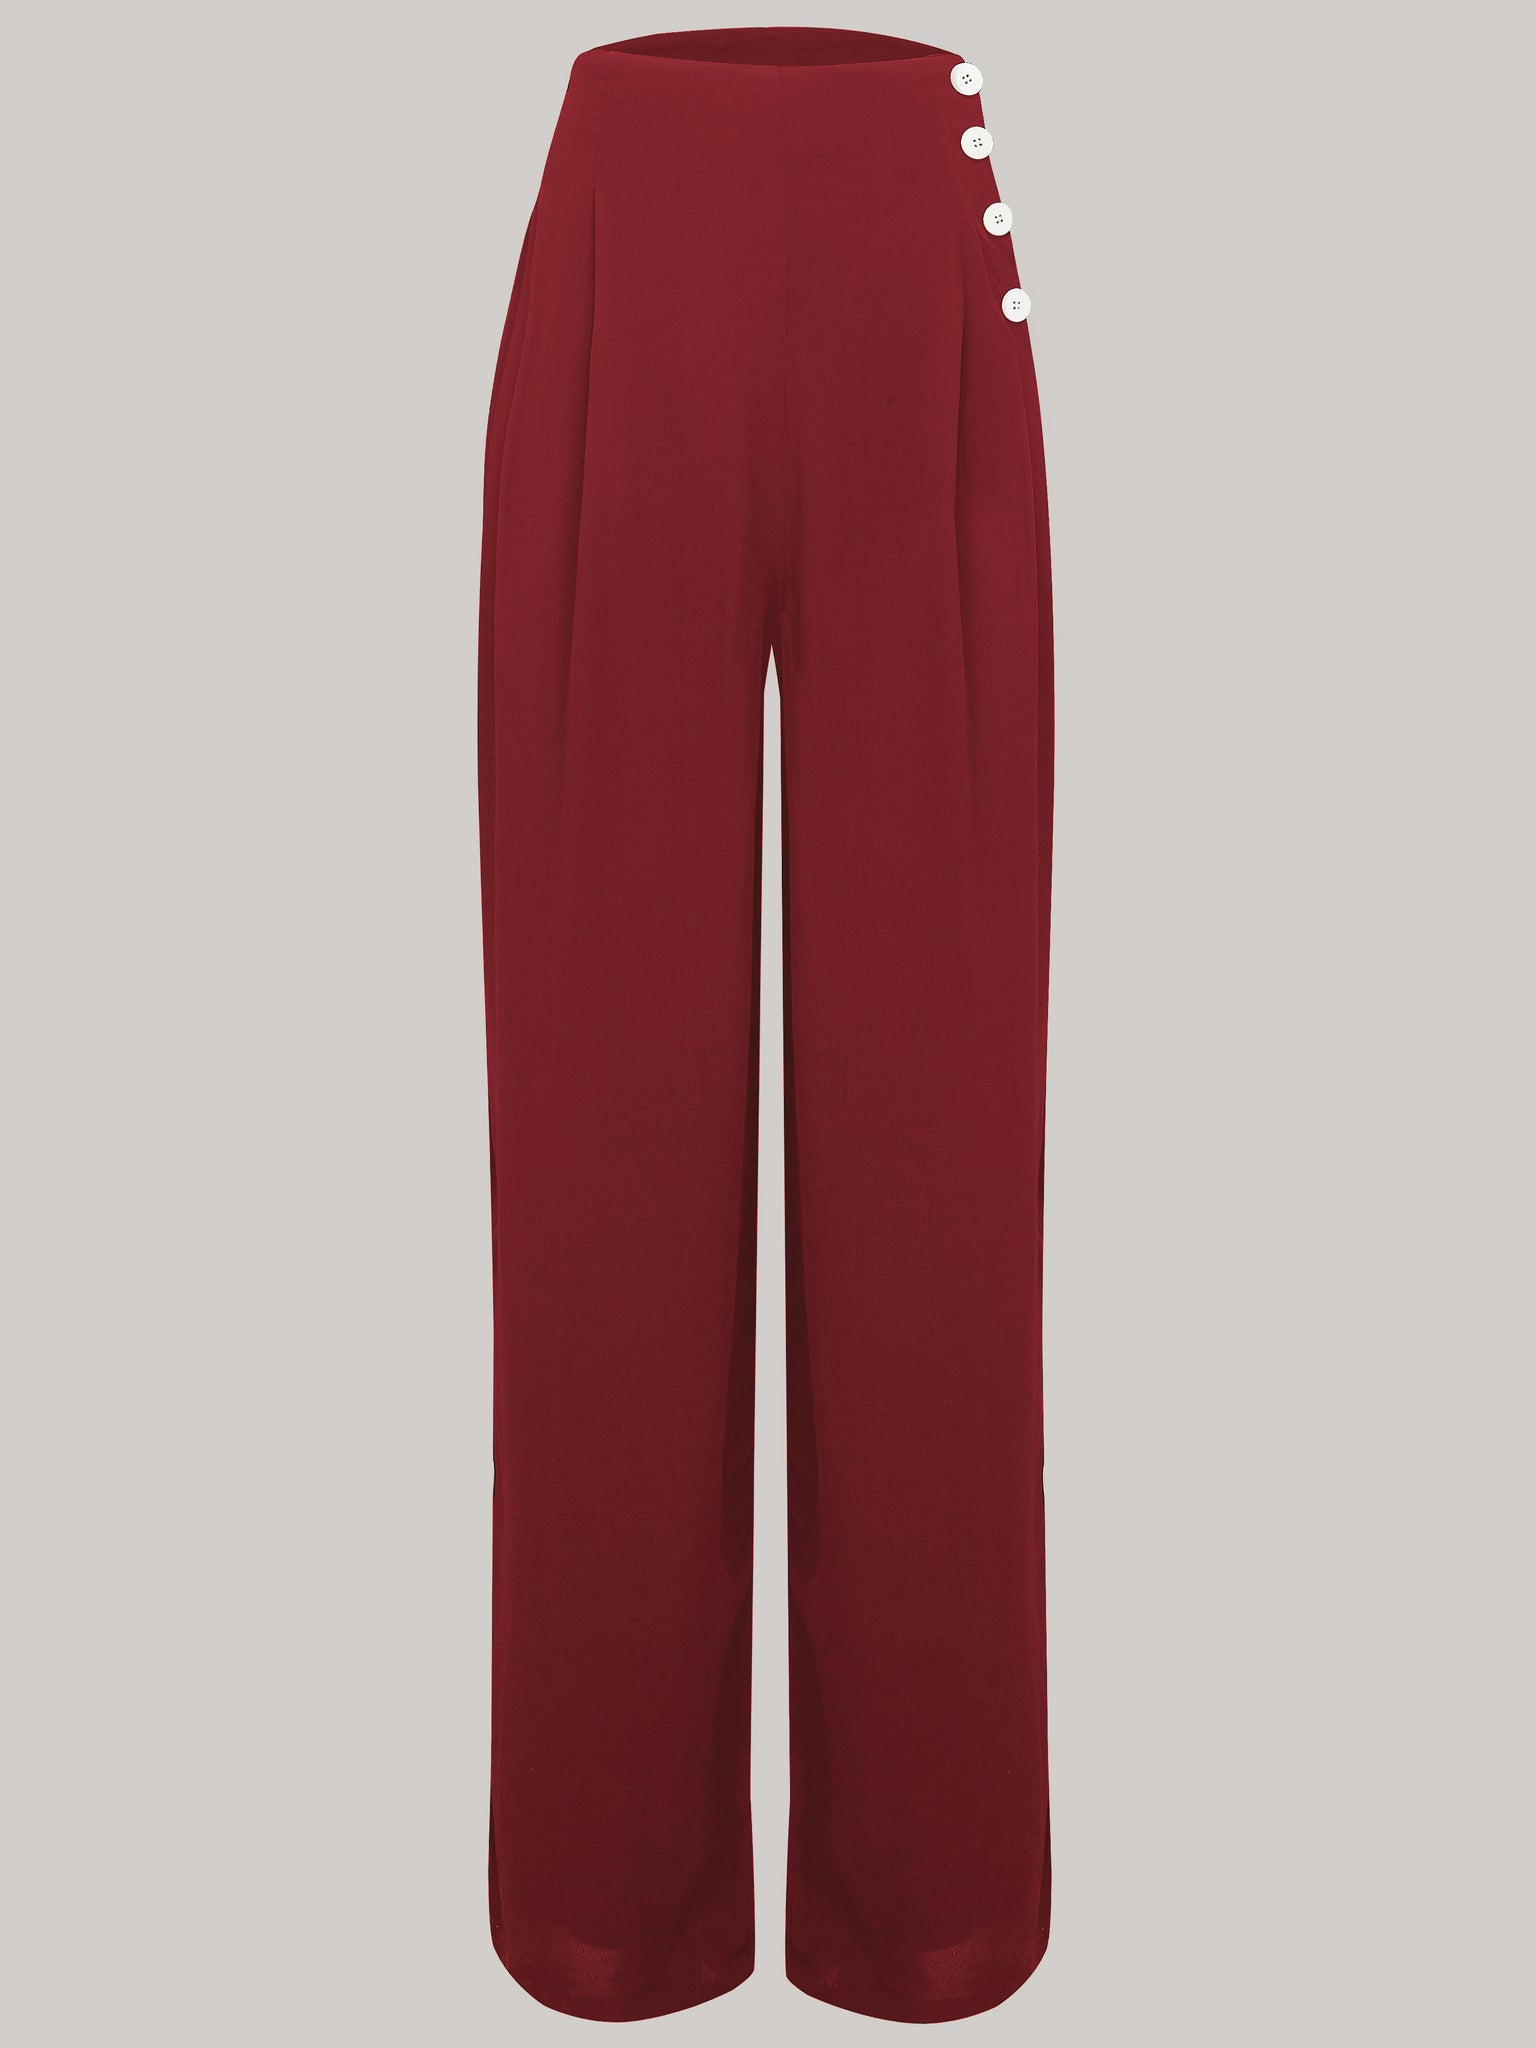 """Audrey"" Trousers in Wine, Totally Authentic & Classic 1940s True Vintage Inspired Style - RocknRomance True 1940s & 1950s Vintage Style"